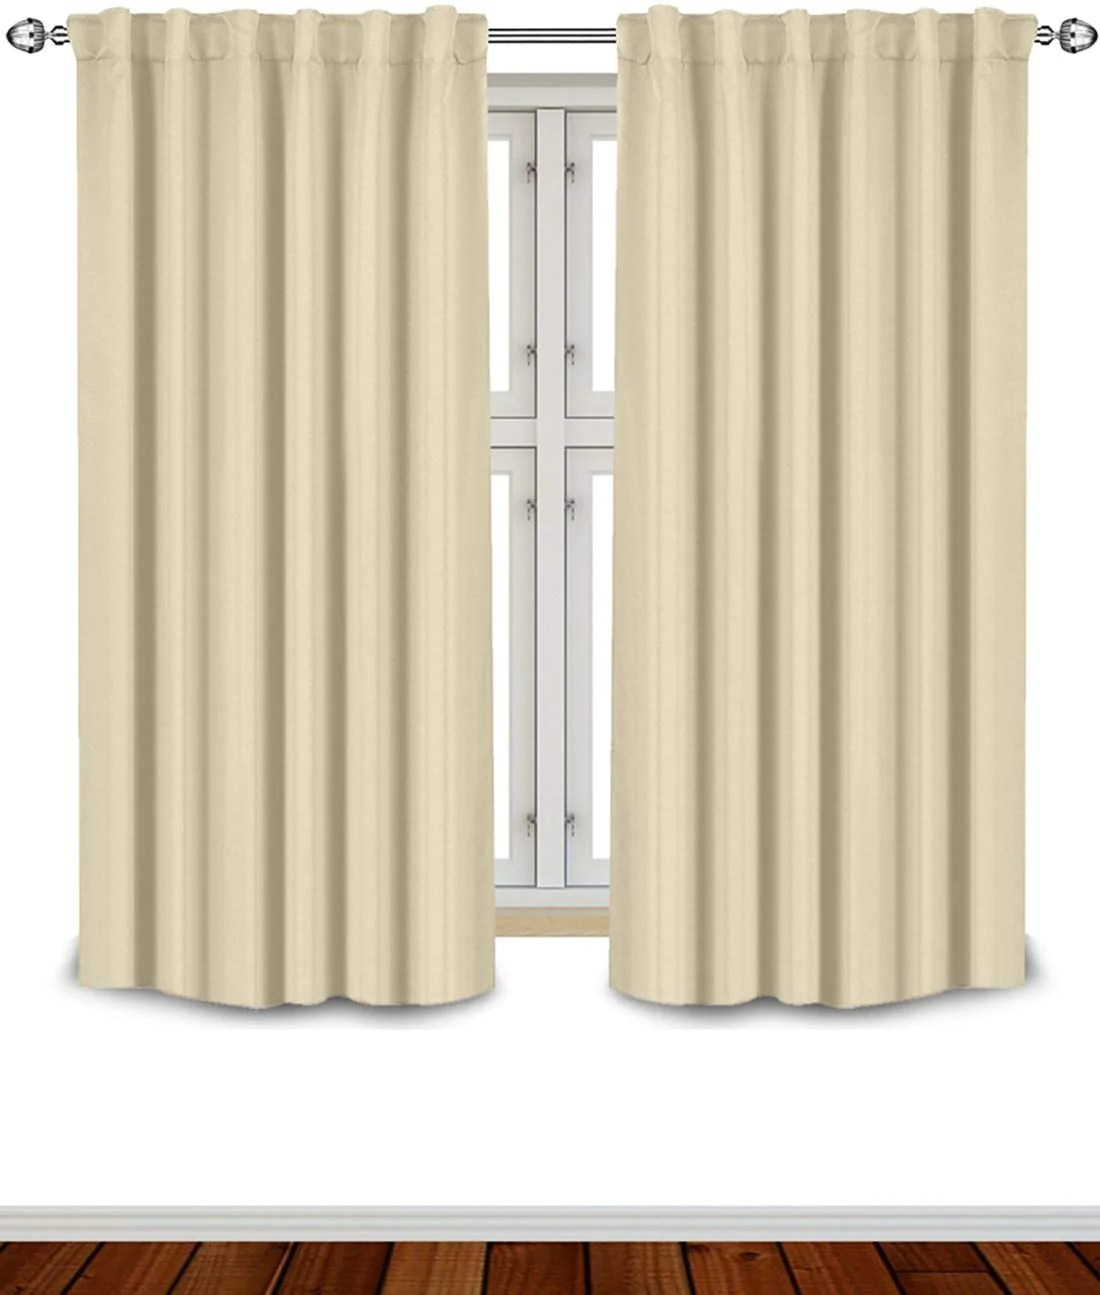 thermal insulated blackout curtains with 7 back loops per panel by utopia bedding rod pocket style 52 x 63 inches beige